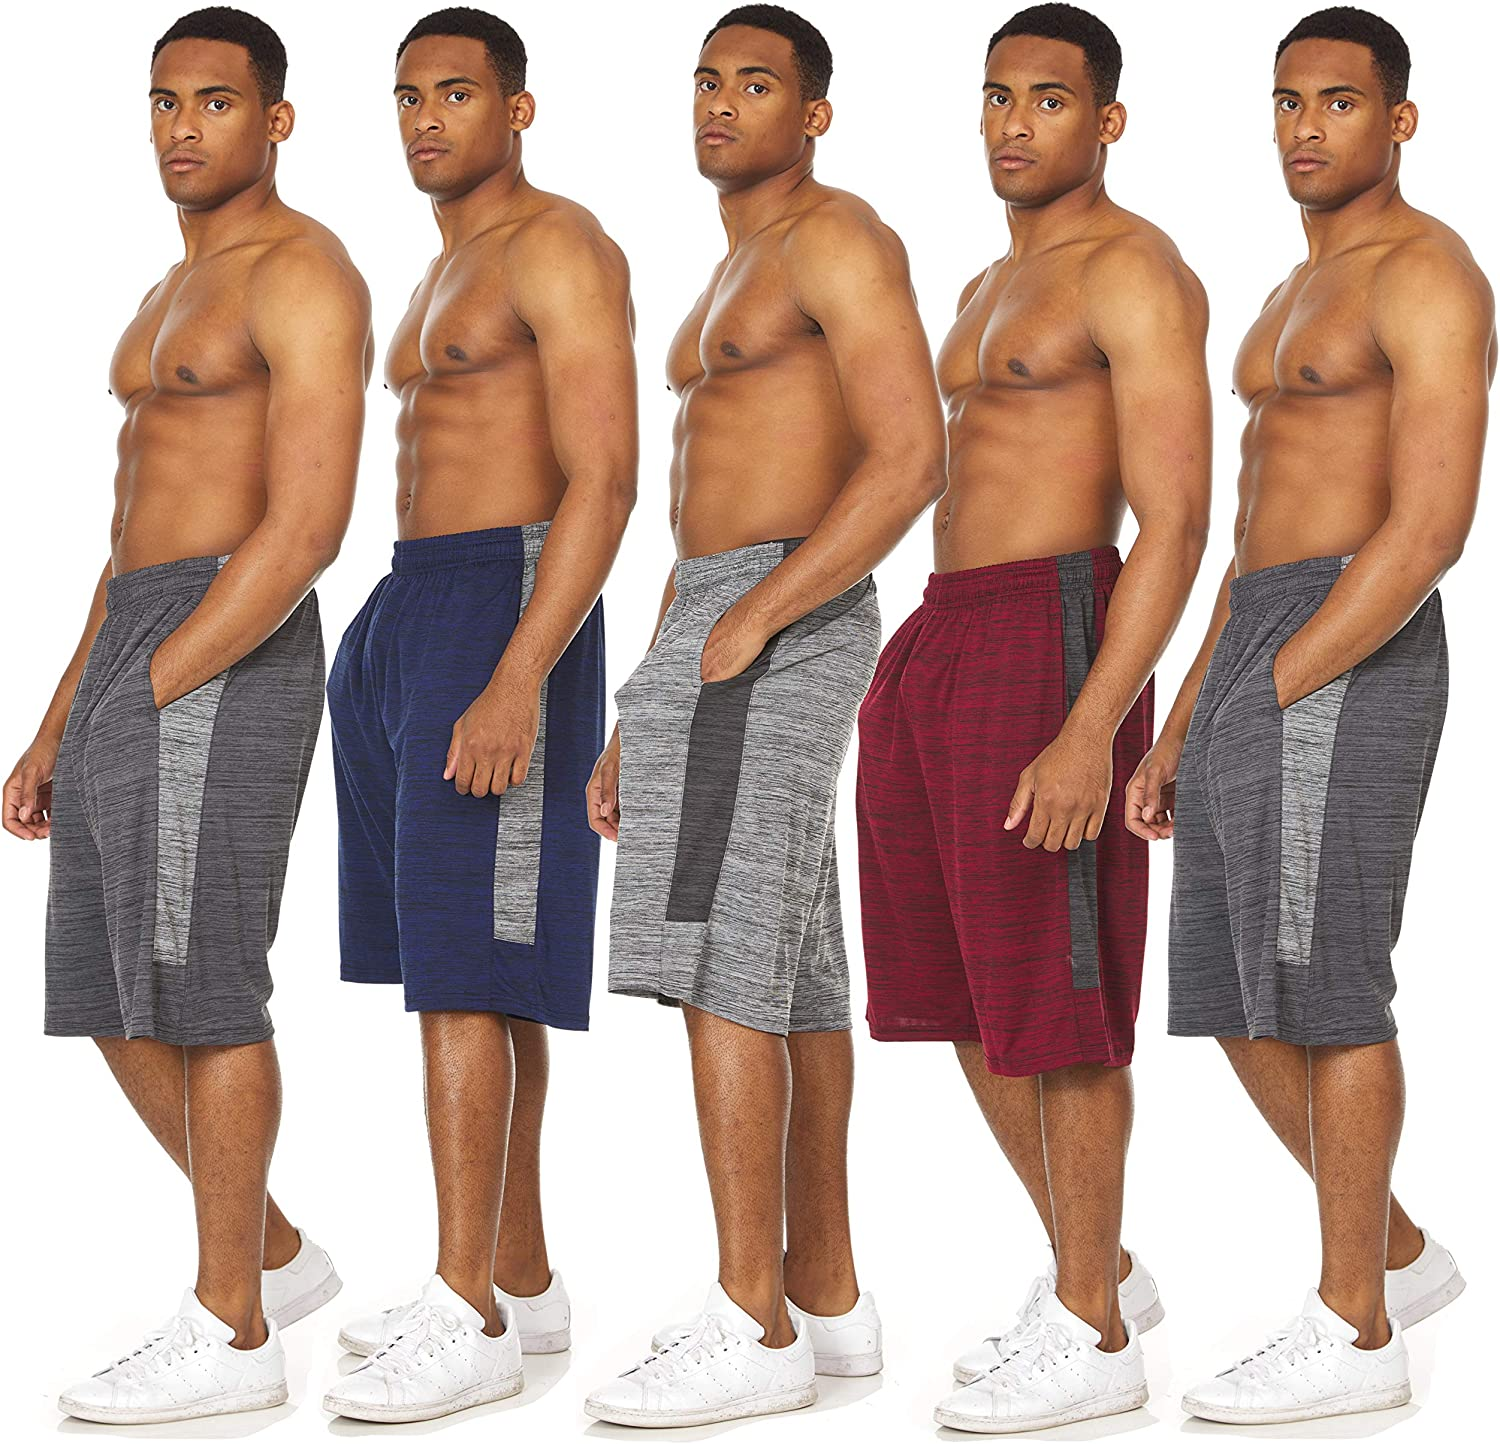 Essential Elements 5 Pack Mens Active Performance Athletic Basketball Gym Workout Gym Cationic Shorts with Pockets